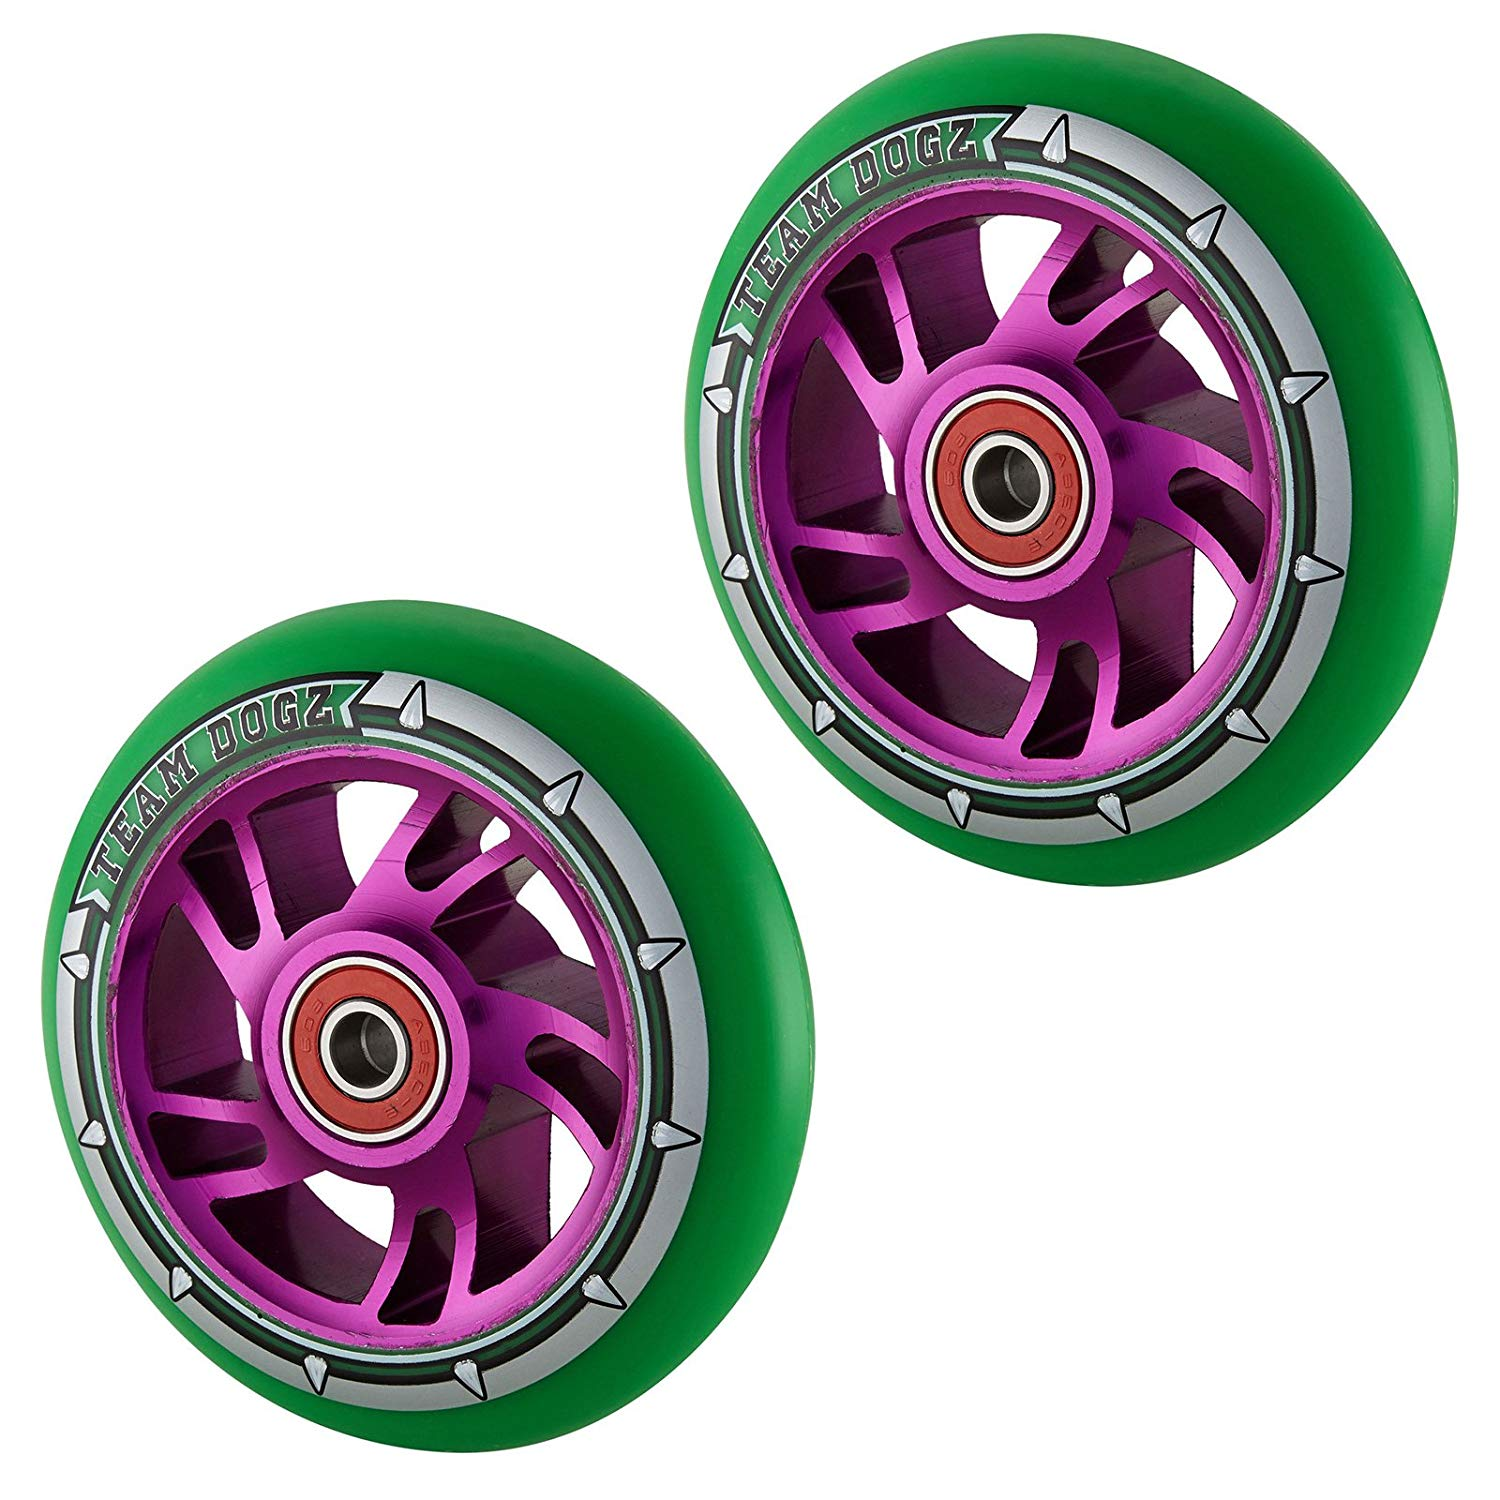 Team Dogz 100mm Swirl Scooter Wheels - Purple Cores Green Tyres (Pair)